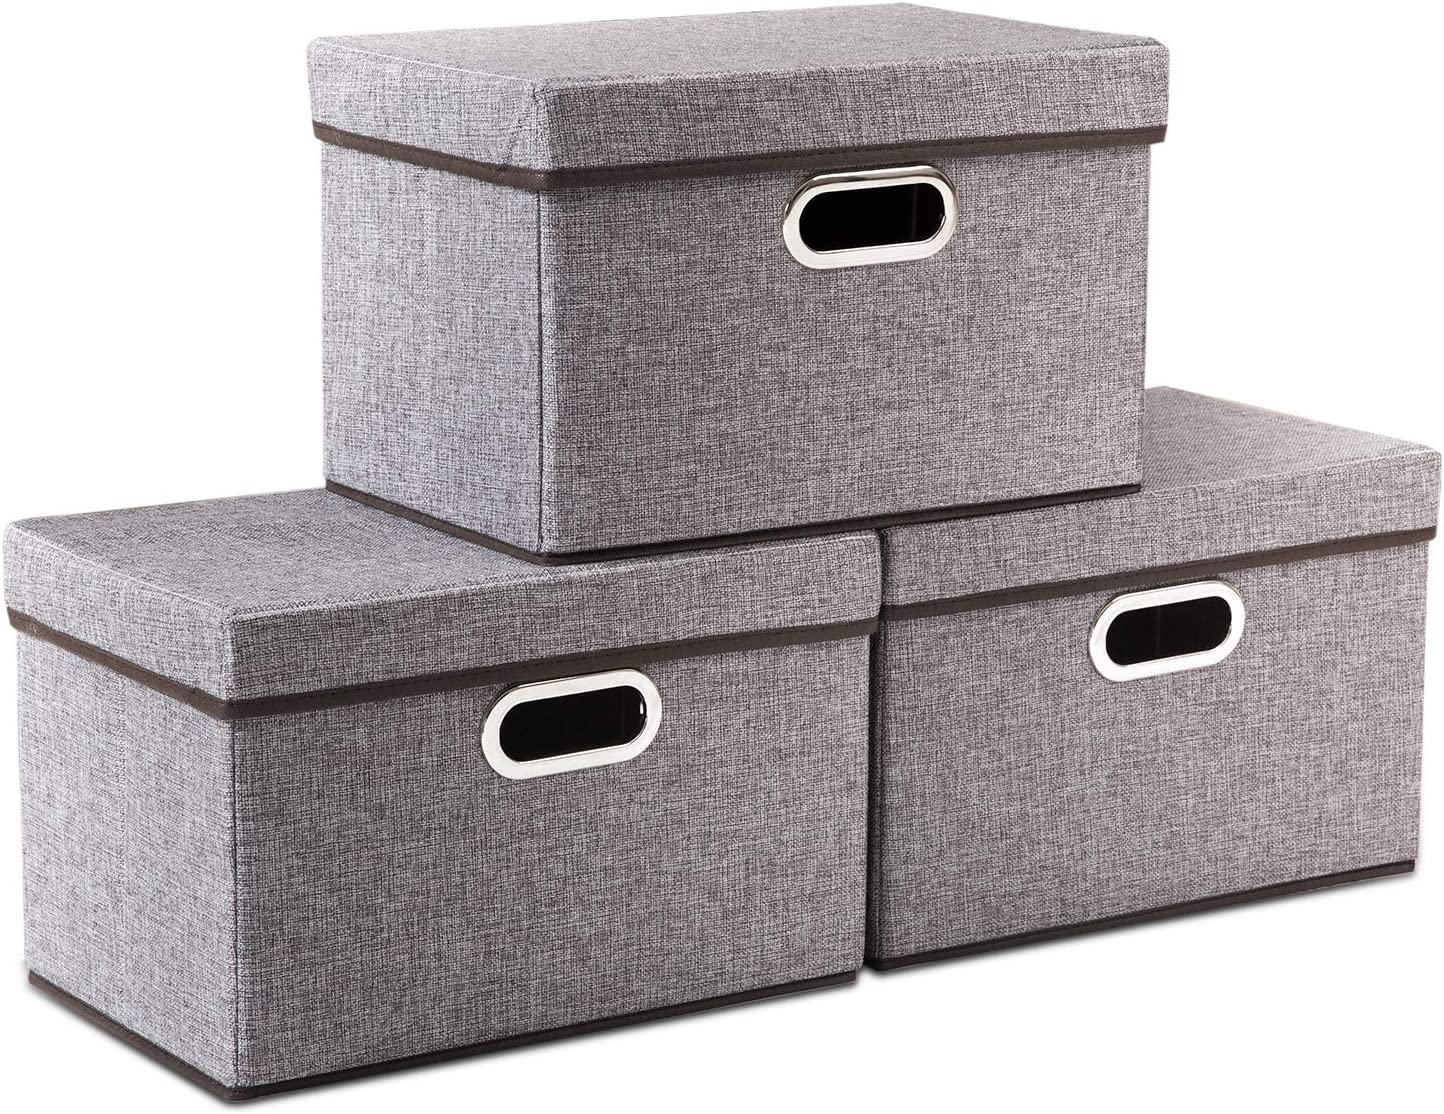 Prandom Foldable Storage Boxes with Lids [3-Pack] Linen Fabric Collapsible Storage Bins Organizer Containers Baskets Cube with Cover for Home Bedroom Closet Office Nursery (15x10x10)